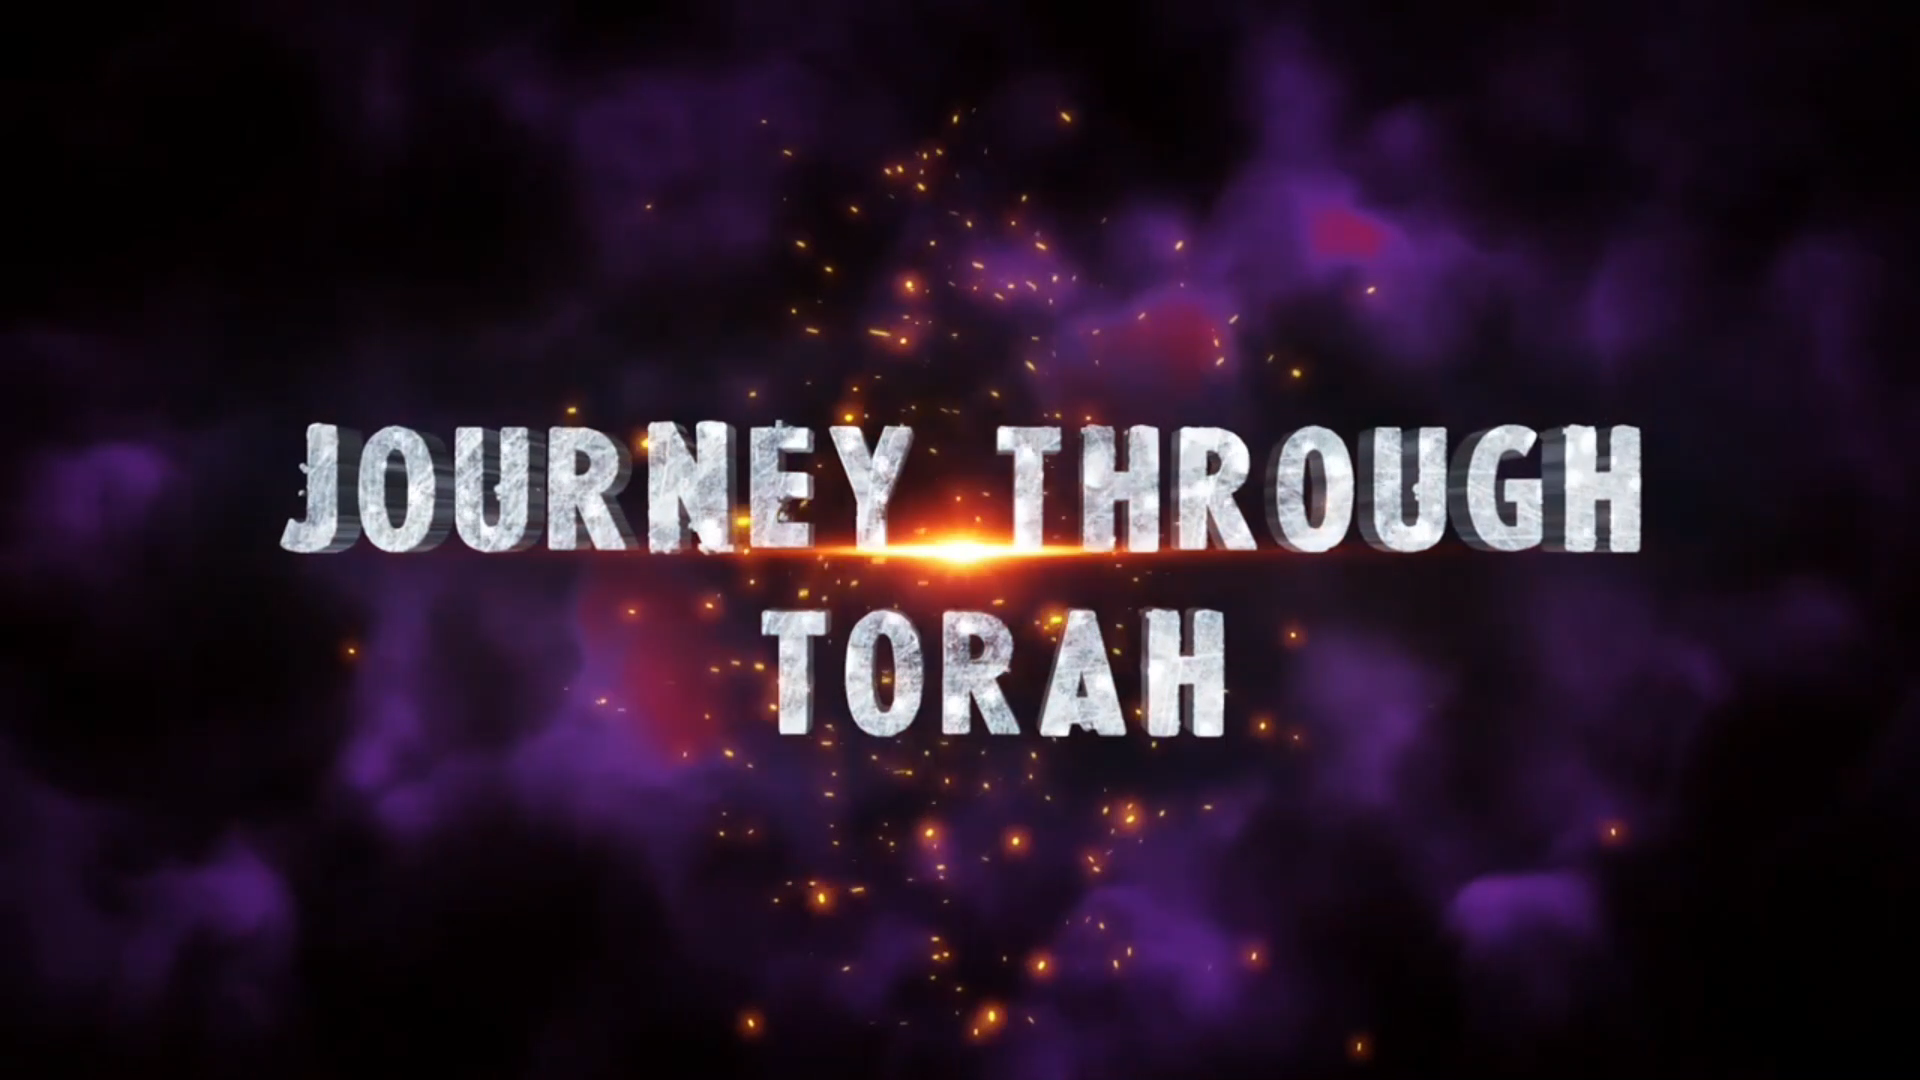 Journey Through Torah